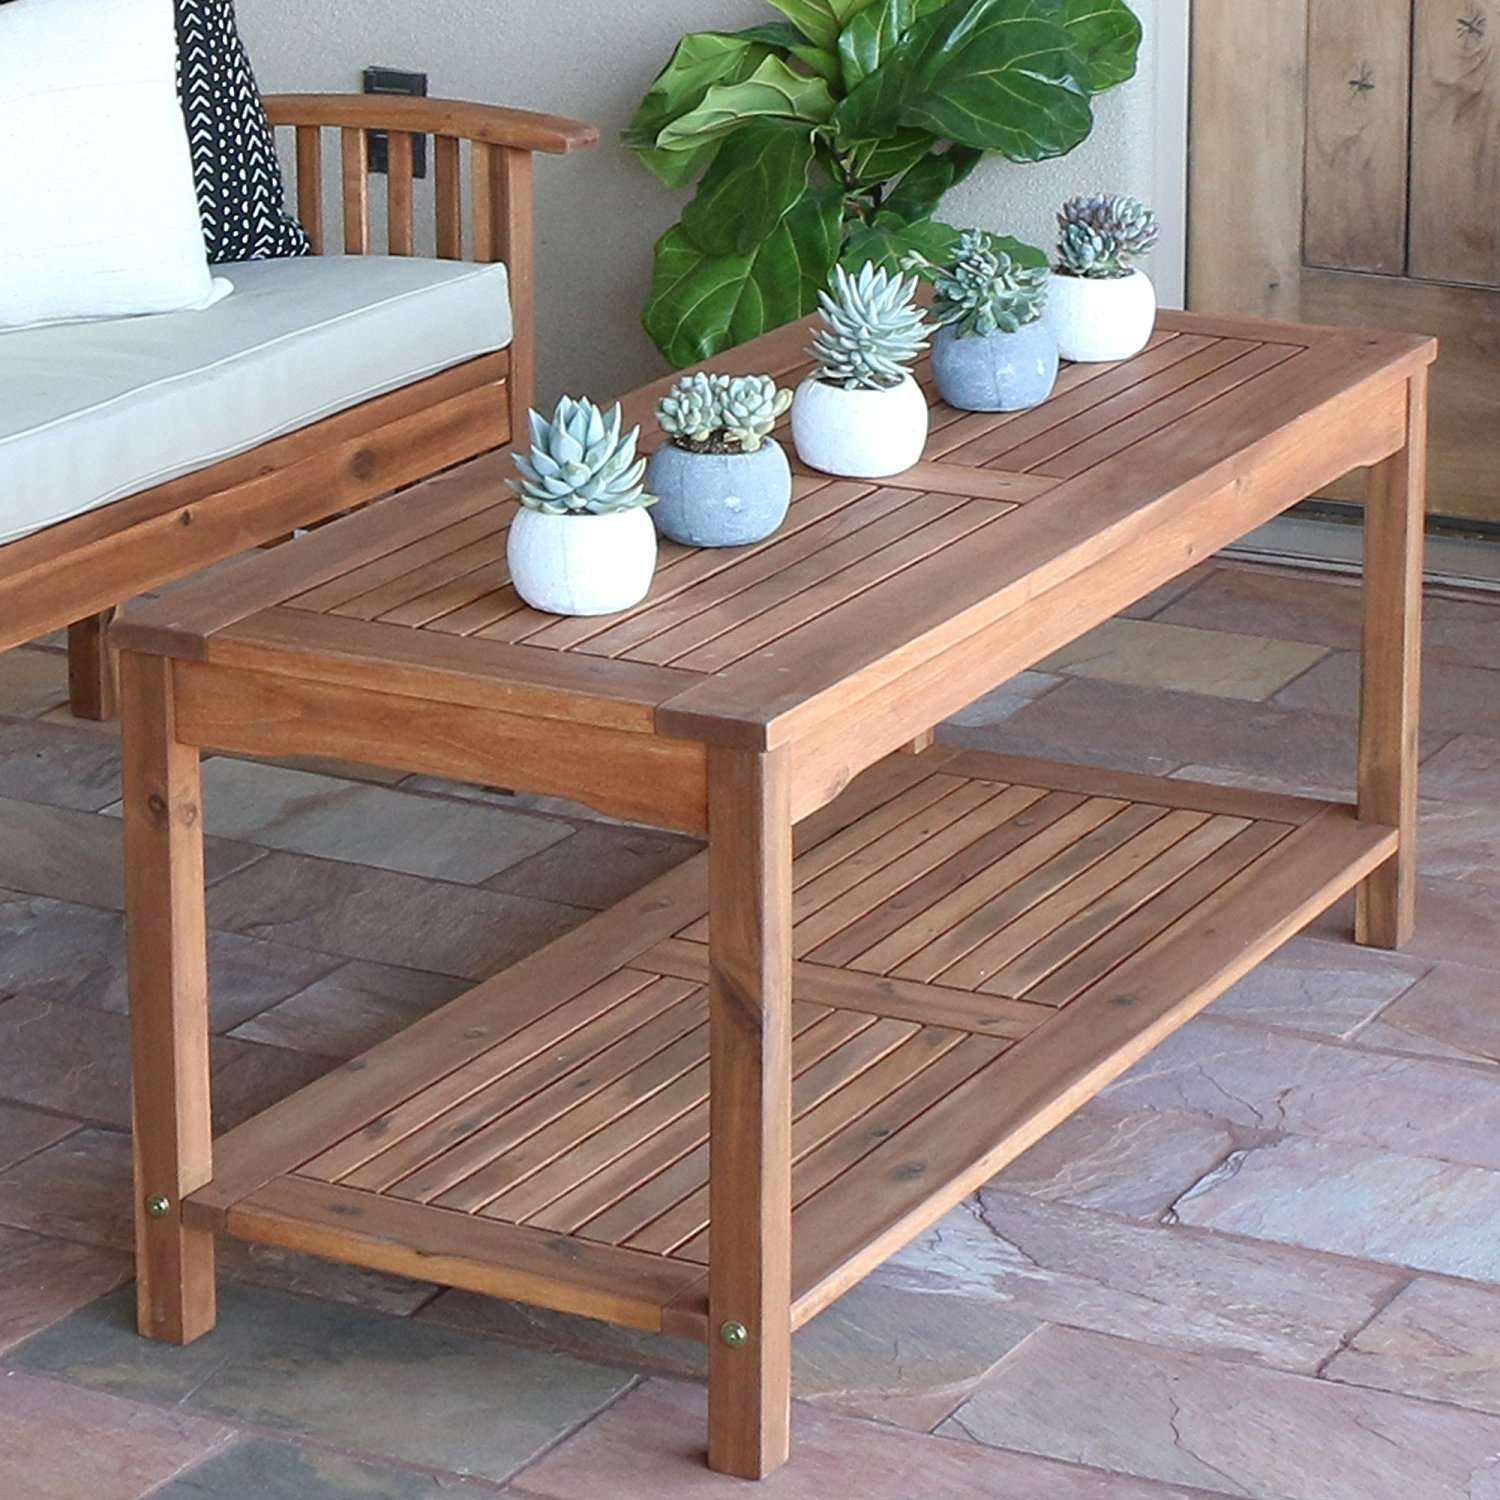 9 Crate And Barrel Concrete Coffee Table Gallery   Coffee Tables Ideas Intended For Parsons Walnut Top & Dark Steel Base 48x16 Console Tables (View 9 of 30)